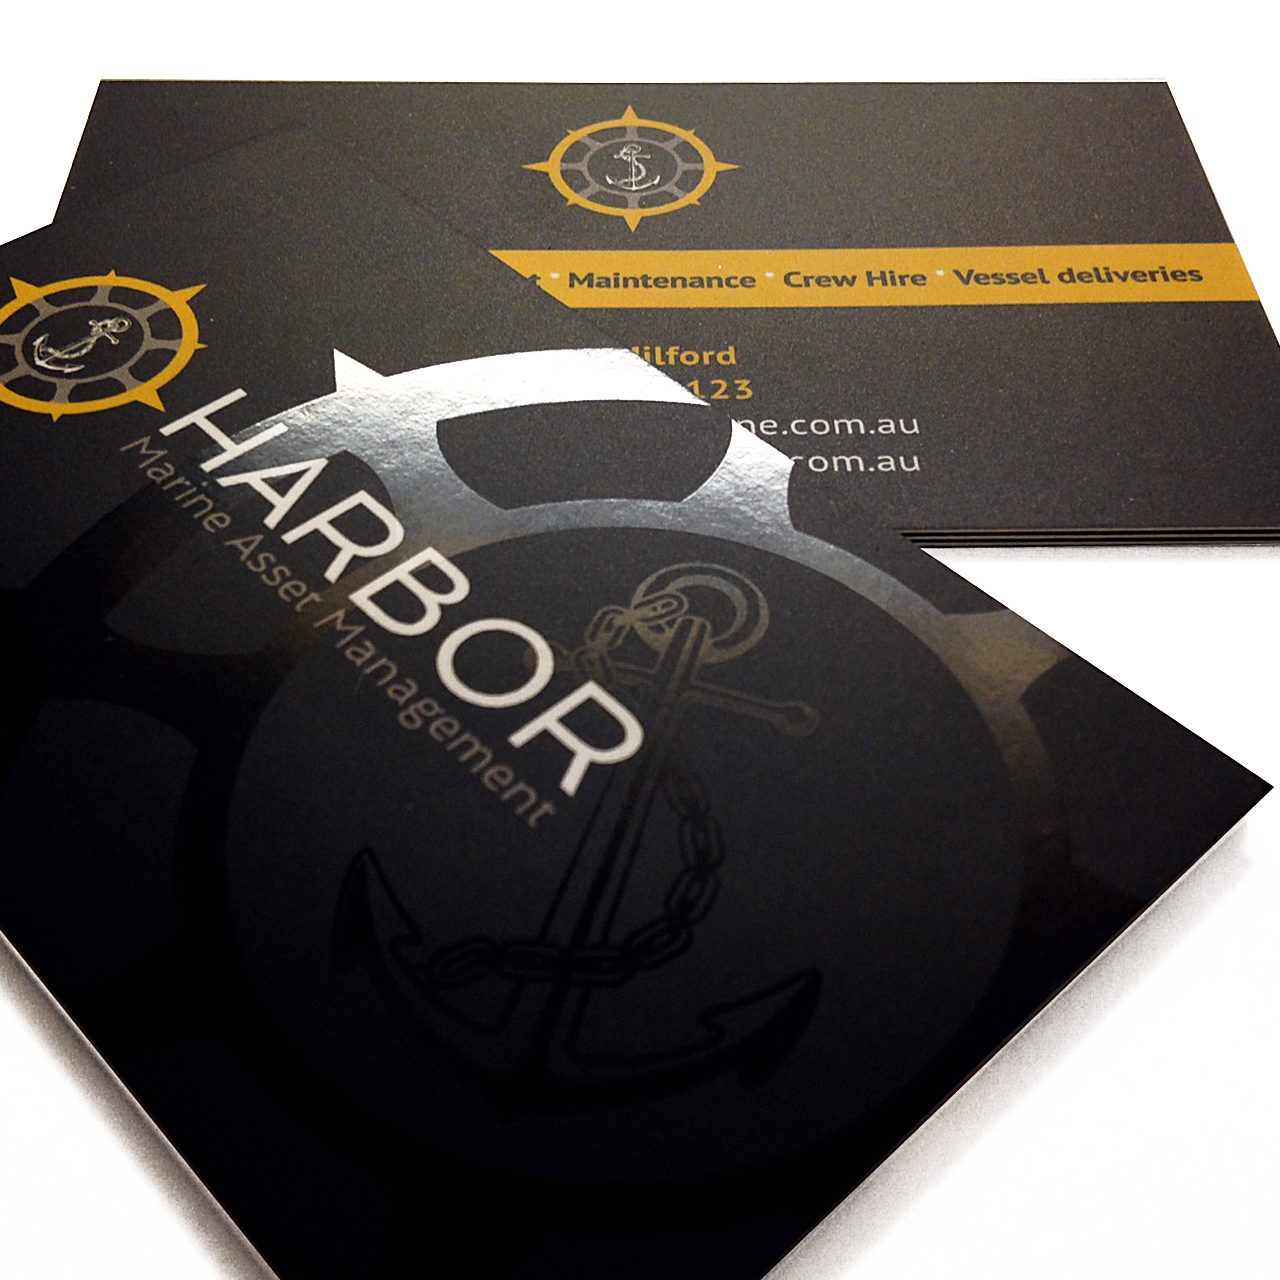 Harbor marine business cards north coast signs harbor marine business cards colourmoves